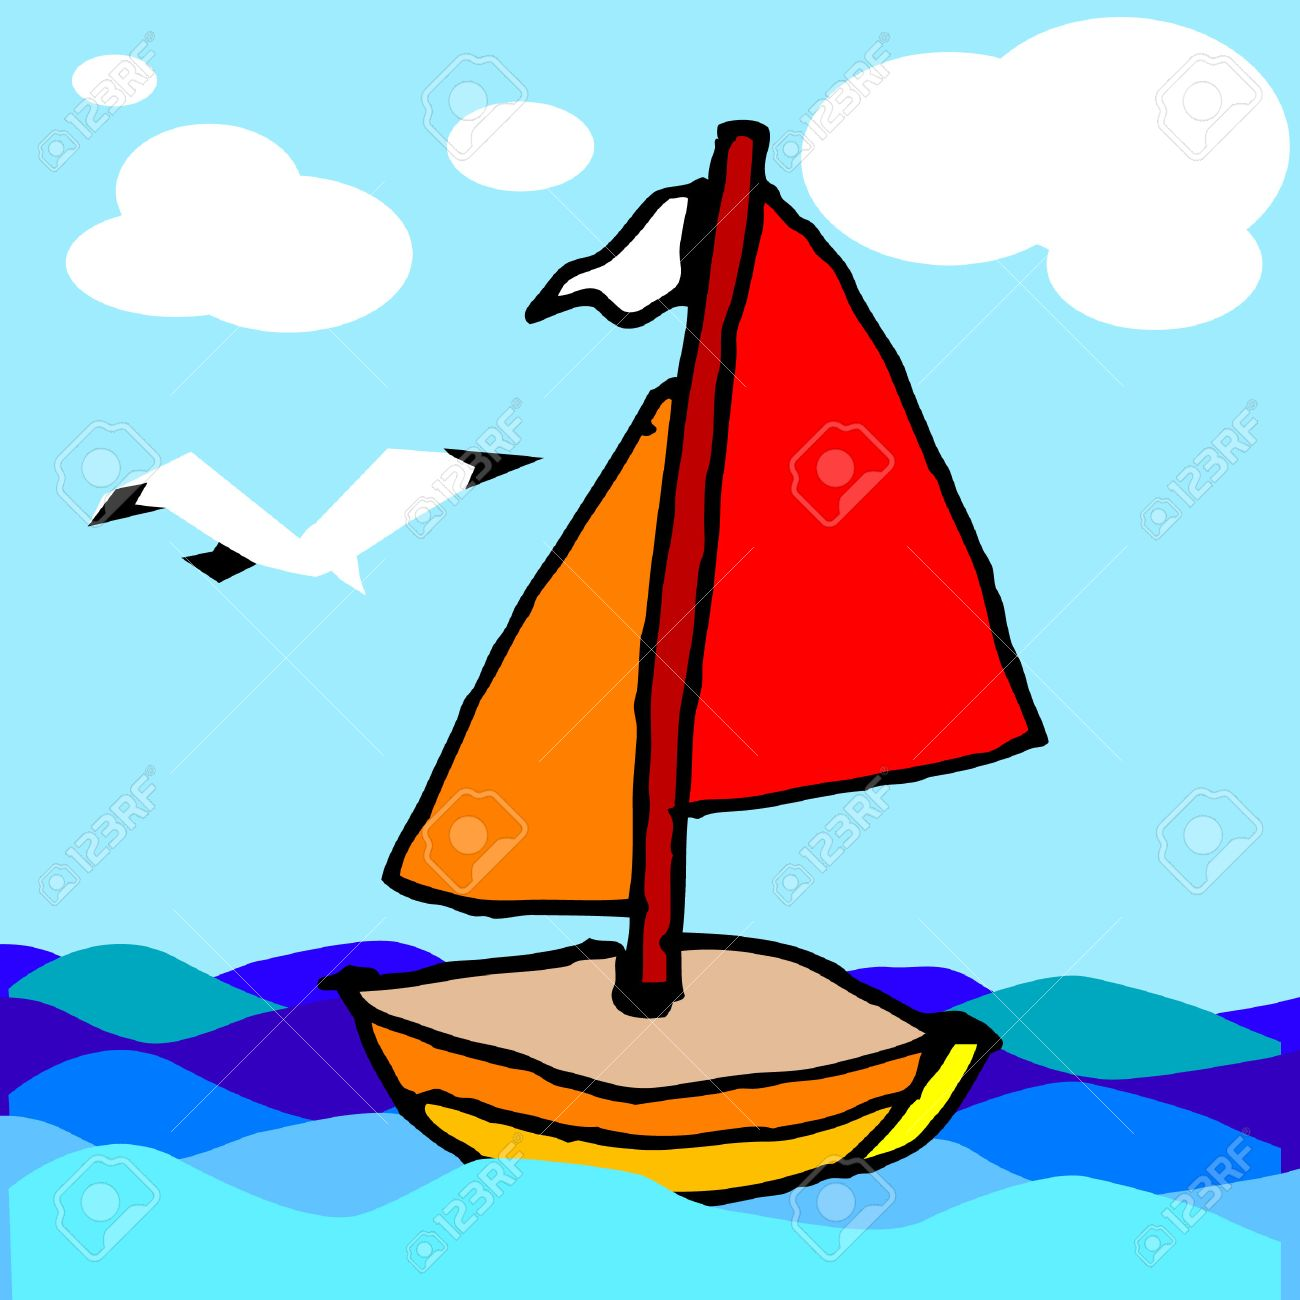 1300x1300 Sailing Boat, Children's Art Drawing, Vector, Illustration Royalty